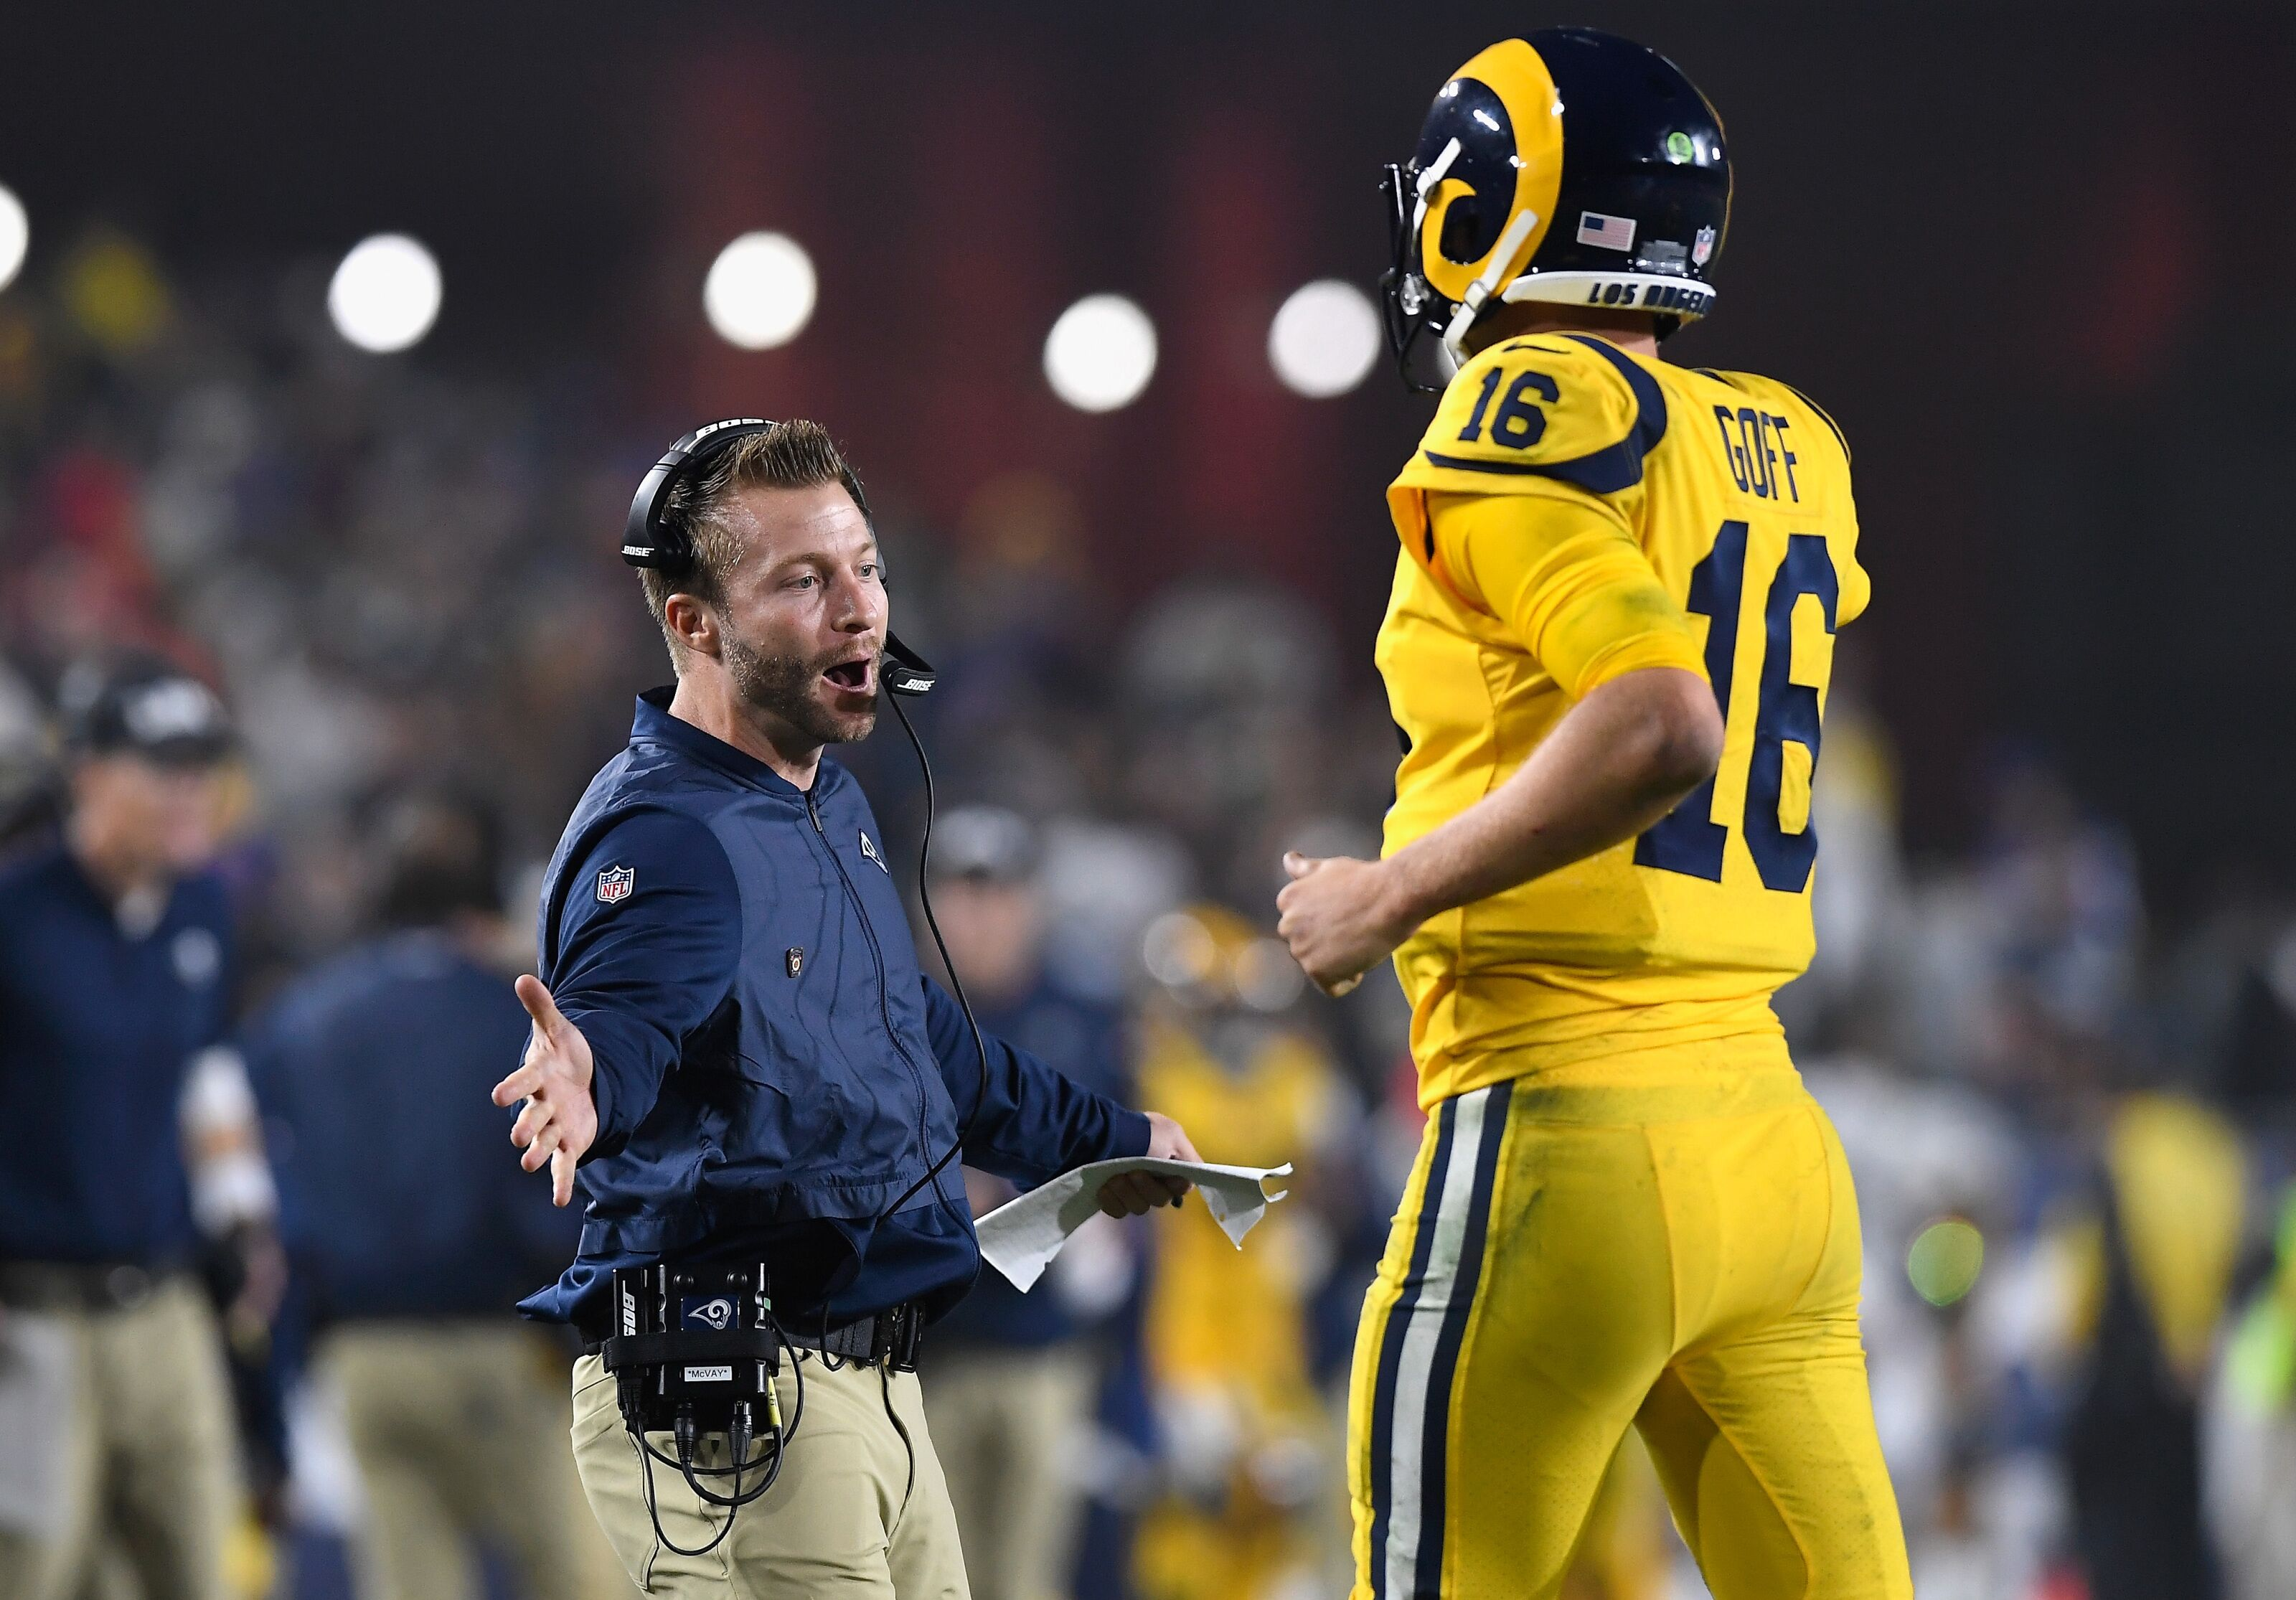 Los Angeles Rams: It won't be easy for teams looking for the next McVay